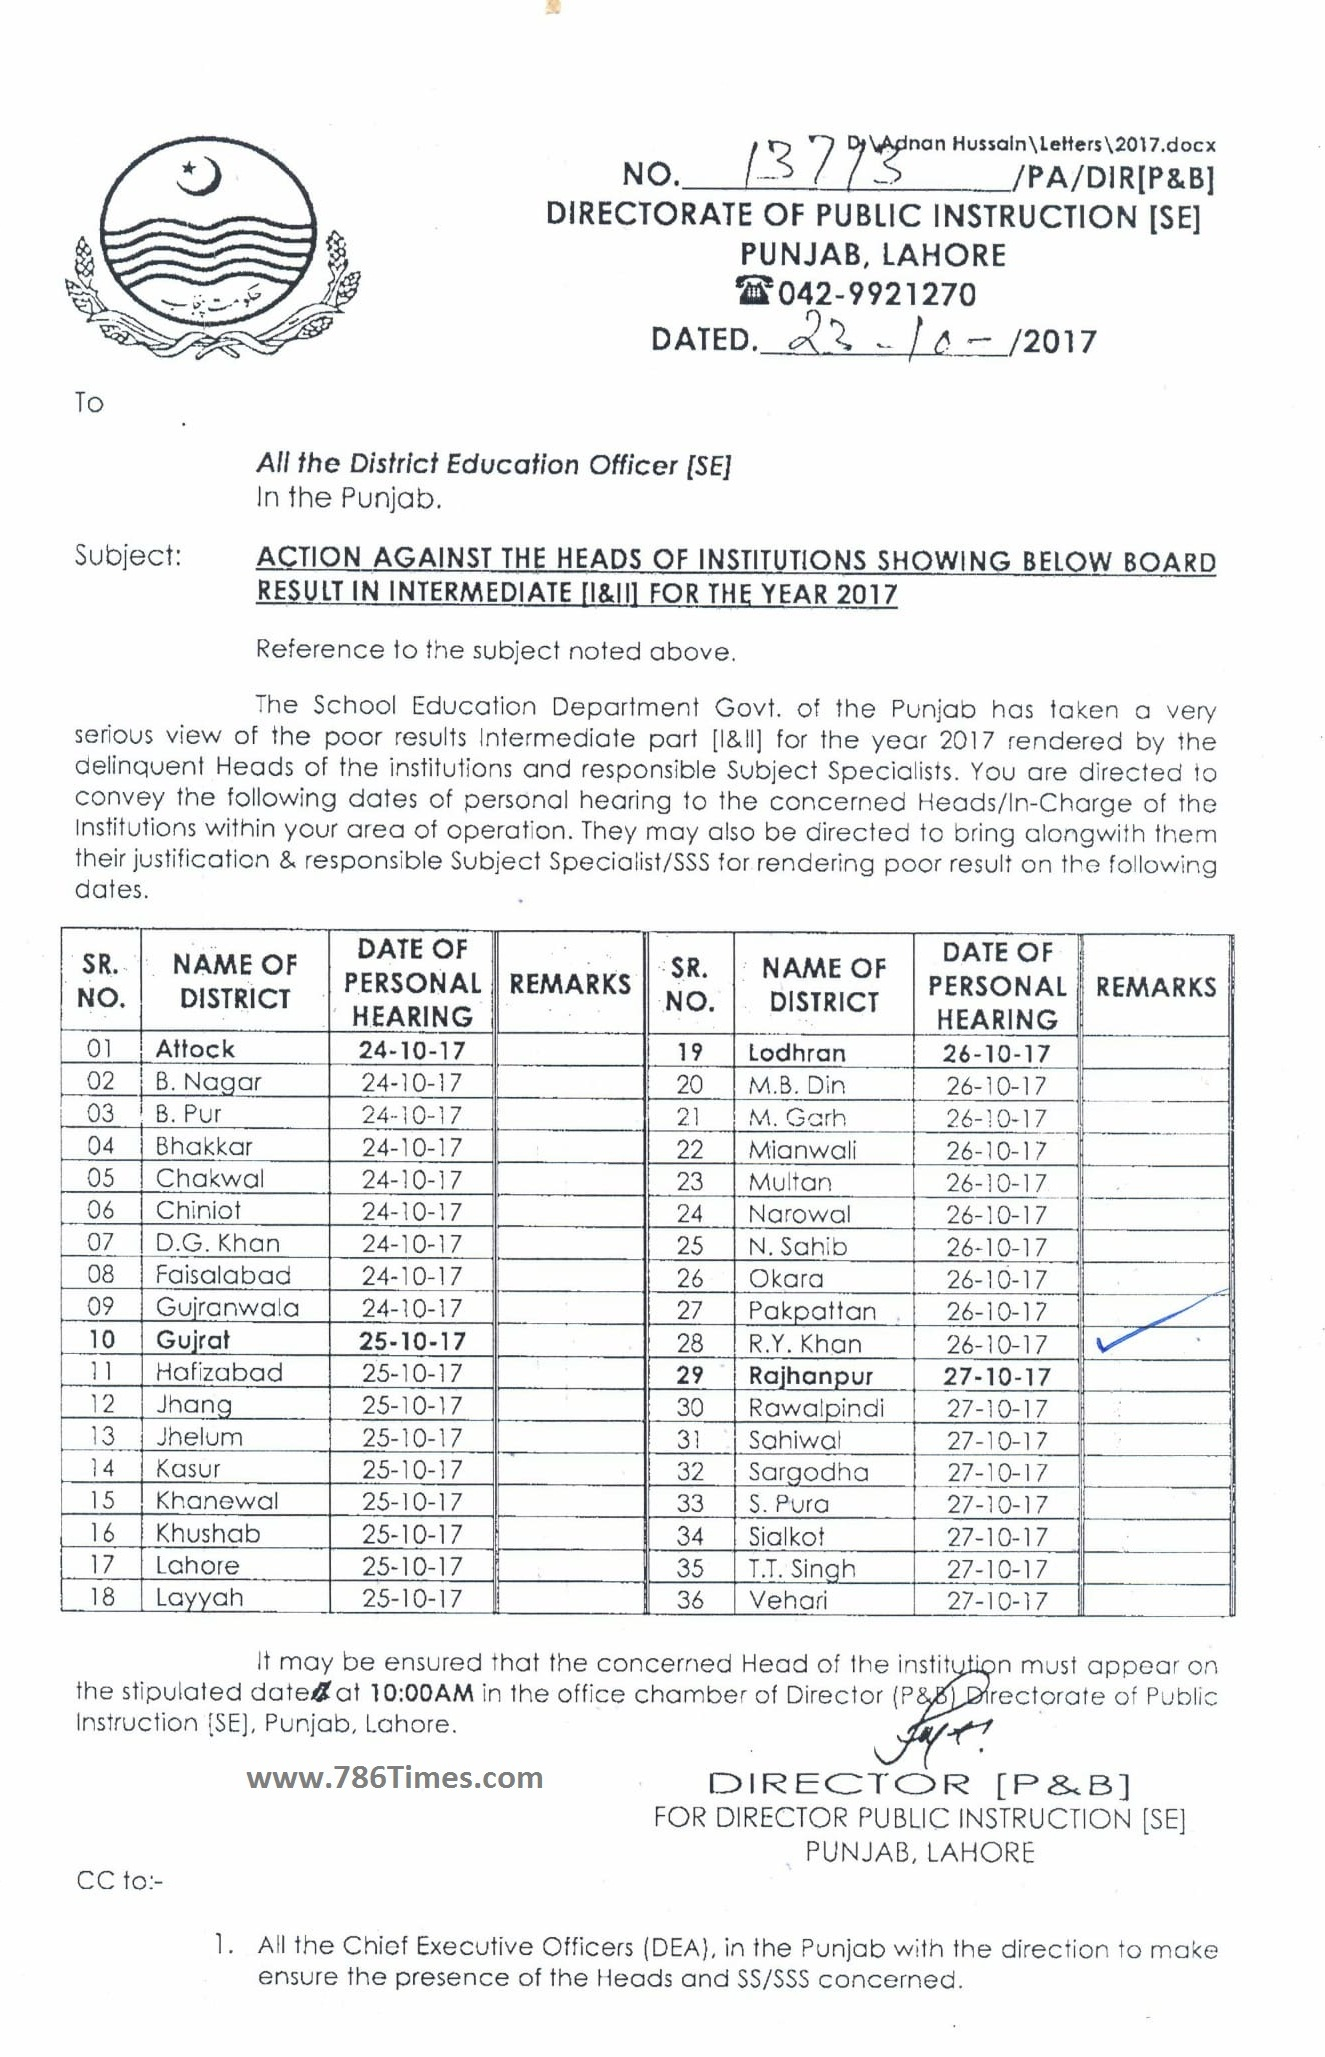 ACTION AGAINST THE HEADS OF INSTITUTIONS SHOWING BELOW BOARD RESULTS IN INTERMEDIATE PART 1 & 2 FOR THE YEAR 2017